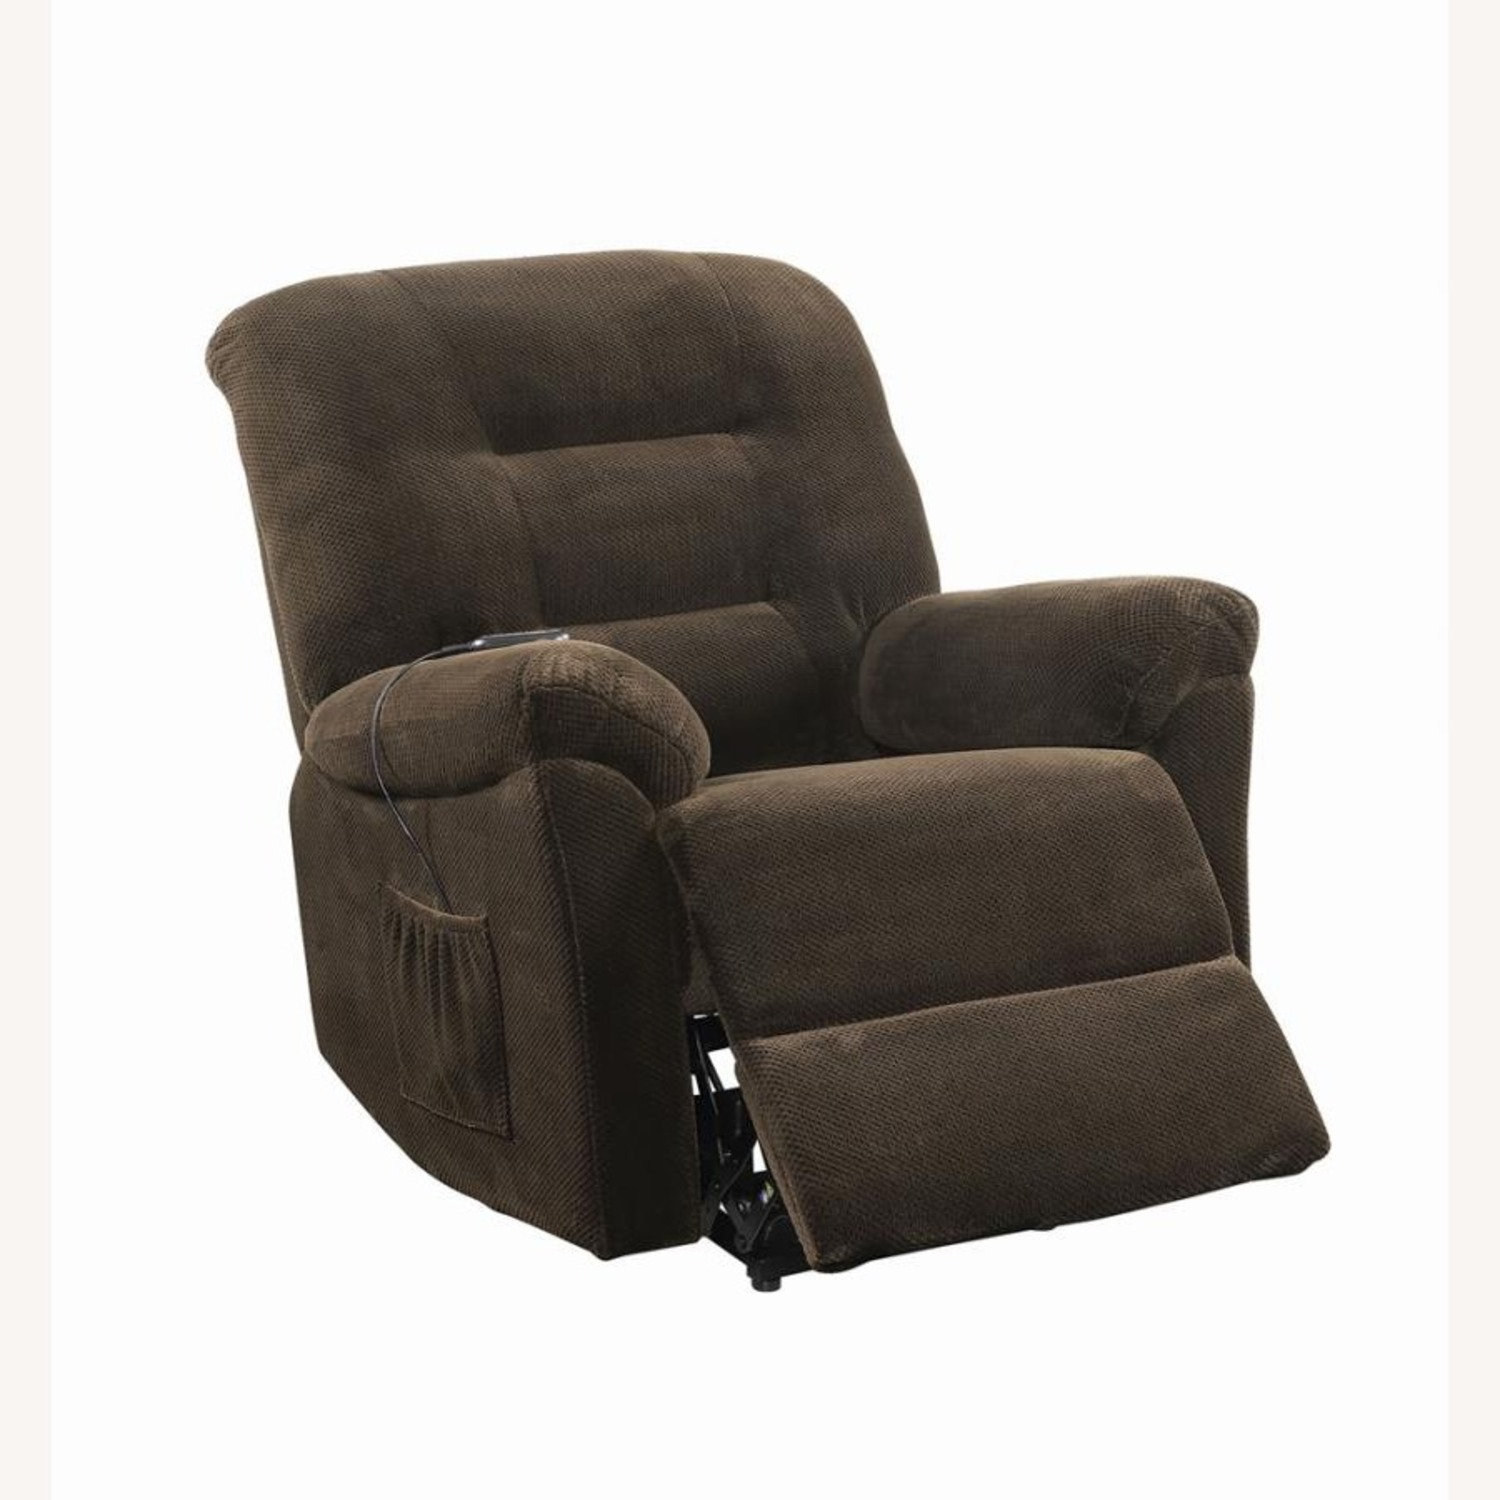 Power Lift Recliner In Chocolate Chenille Fabric - image-1